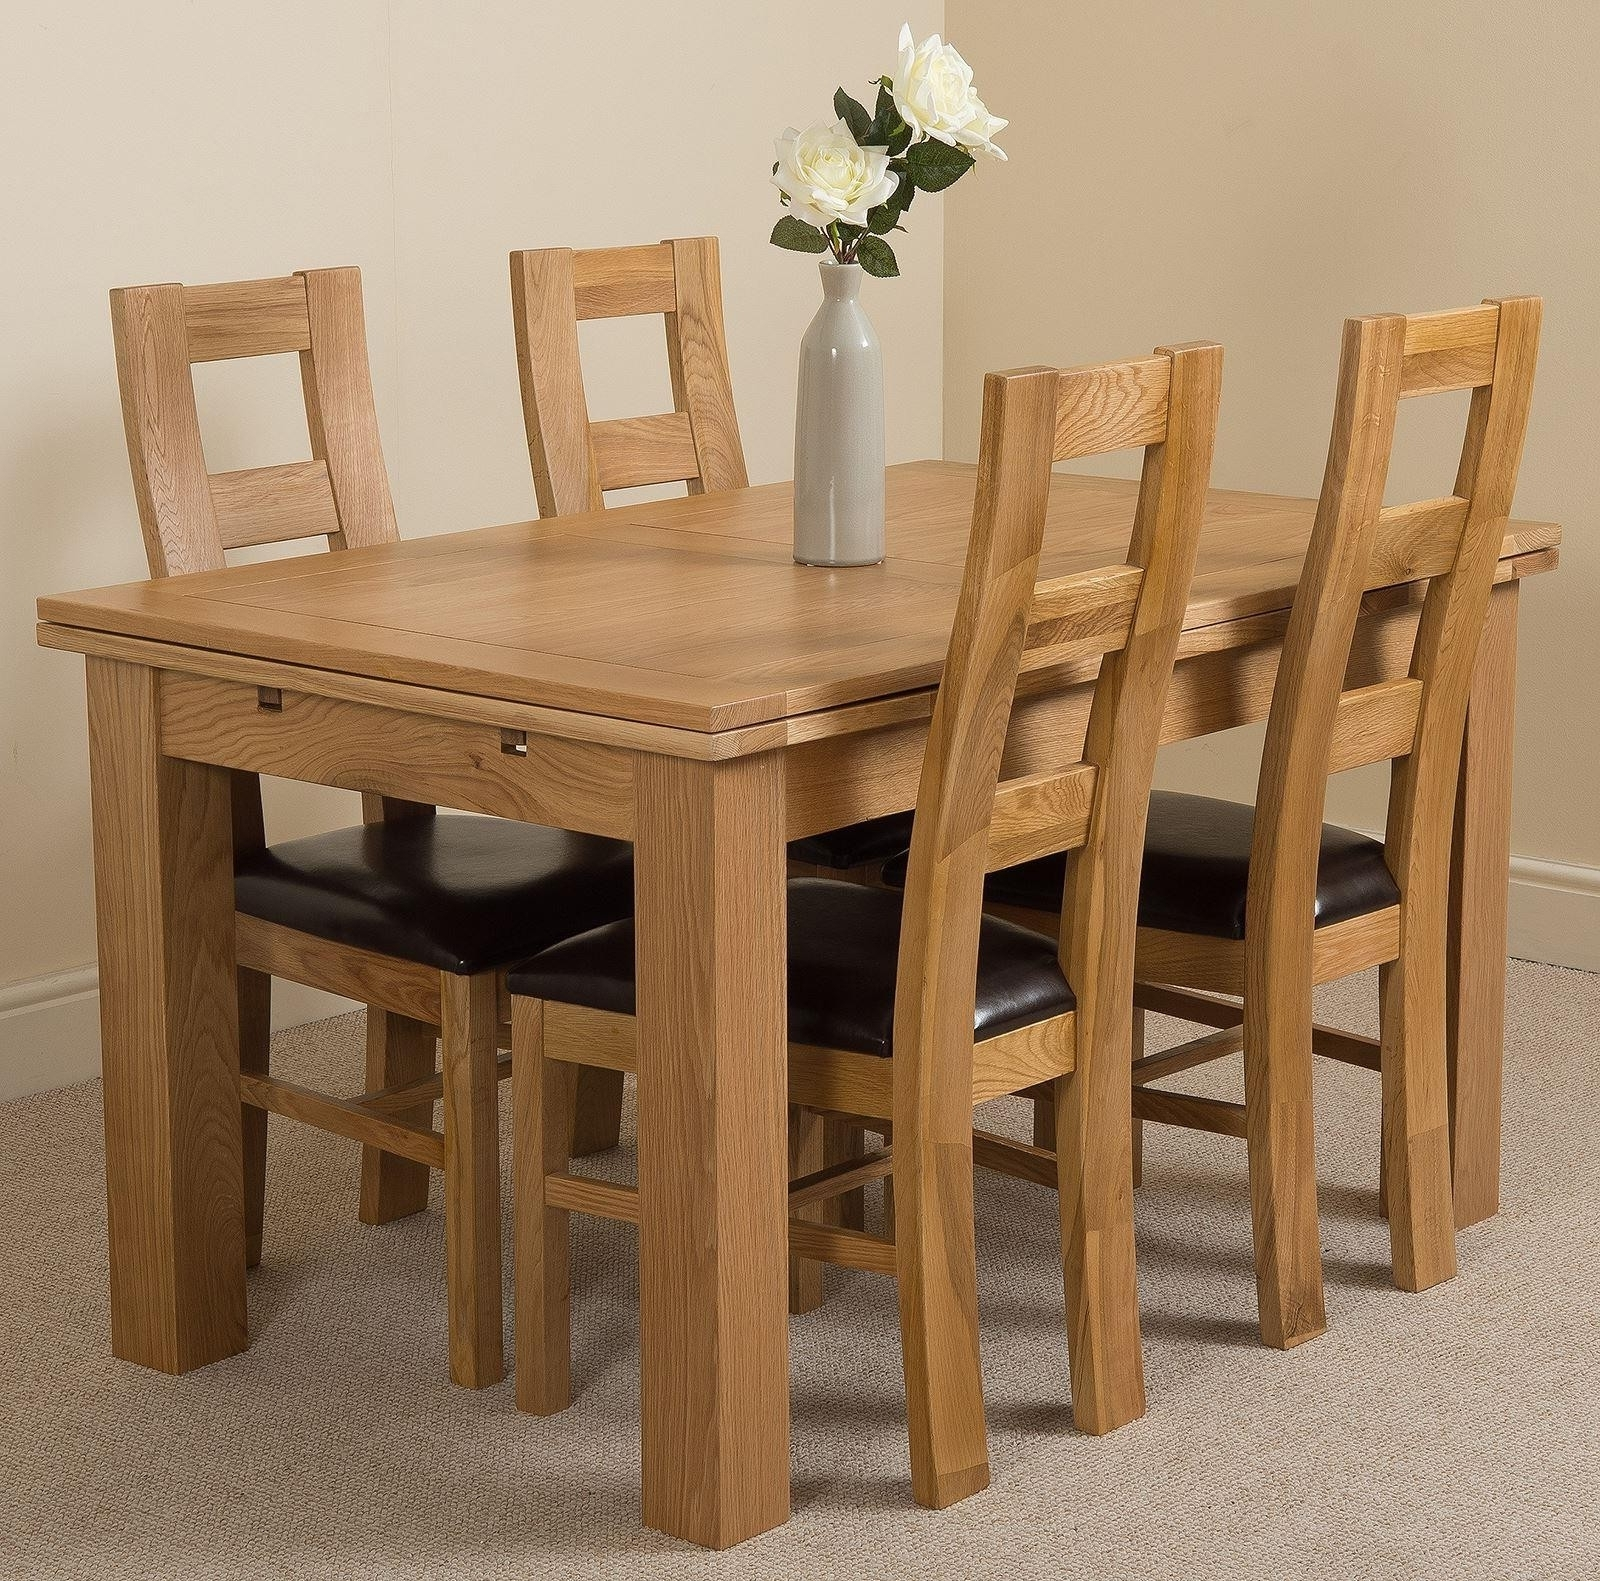 Oak Furniture King Pertaining To Oak Extending Dining Tables And 4 Chairs (View 20 of 25)